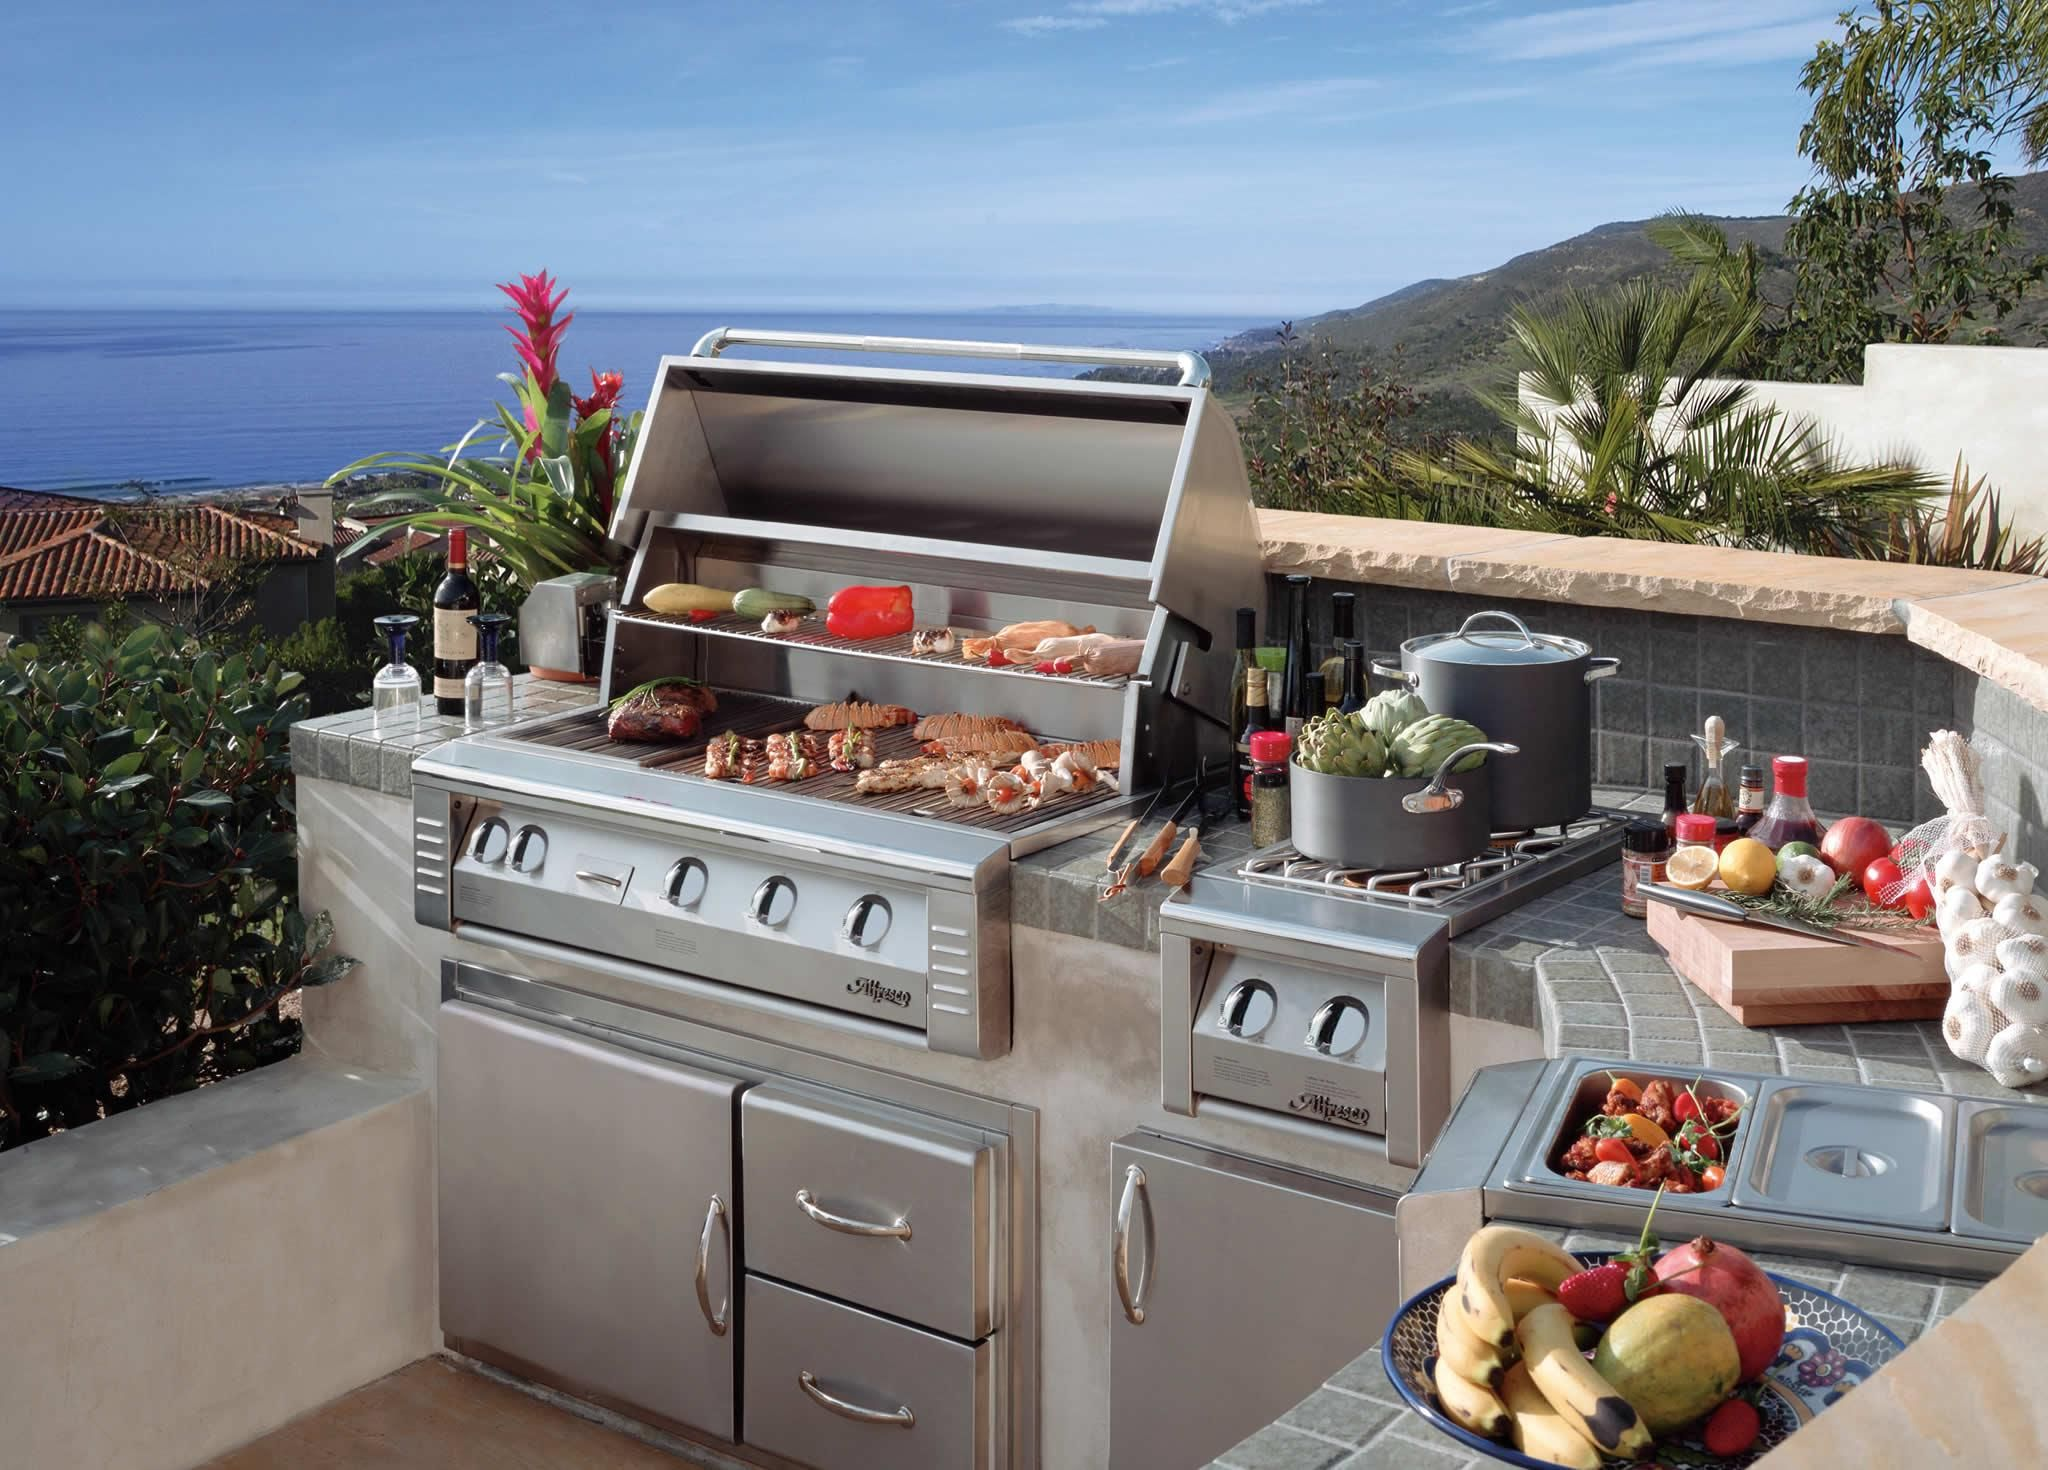 Bbq Concepts Of Las Vegas Nevada Is Your 1 Source For Custom Outdoor Kitchens And Fire Features Outdoor Kitchen Design Outdoor Kitchen Outdoor Kitchen Grill